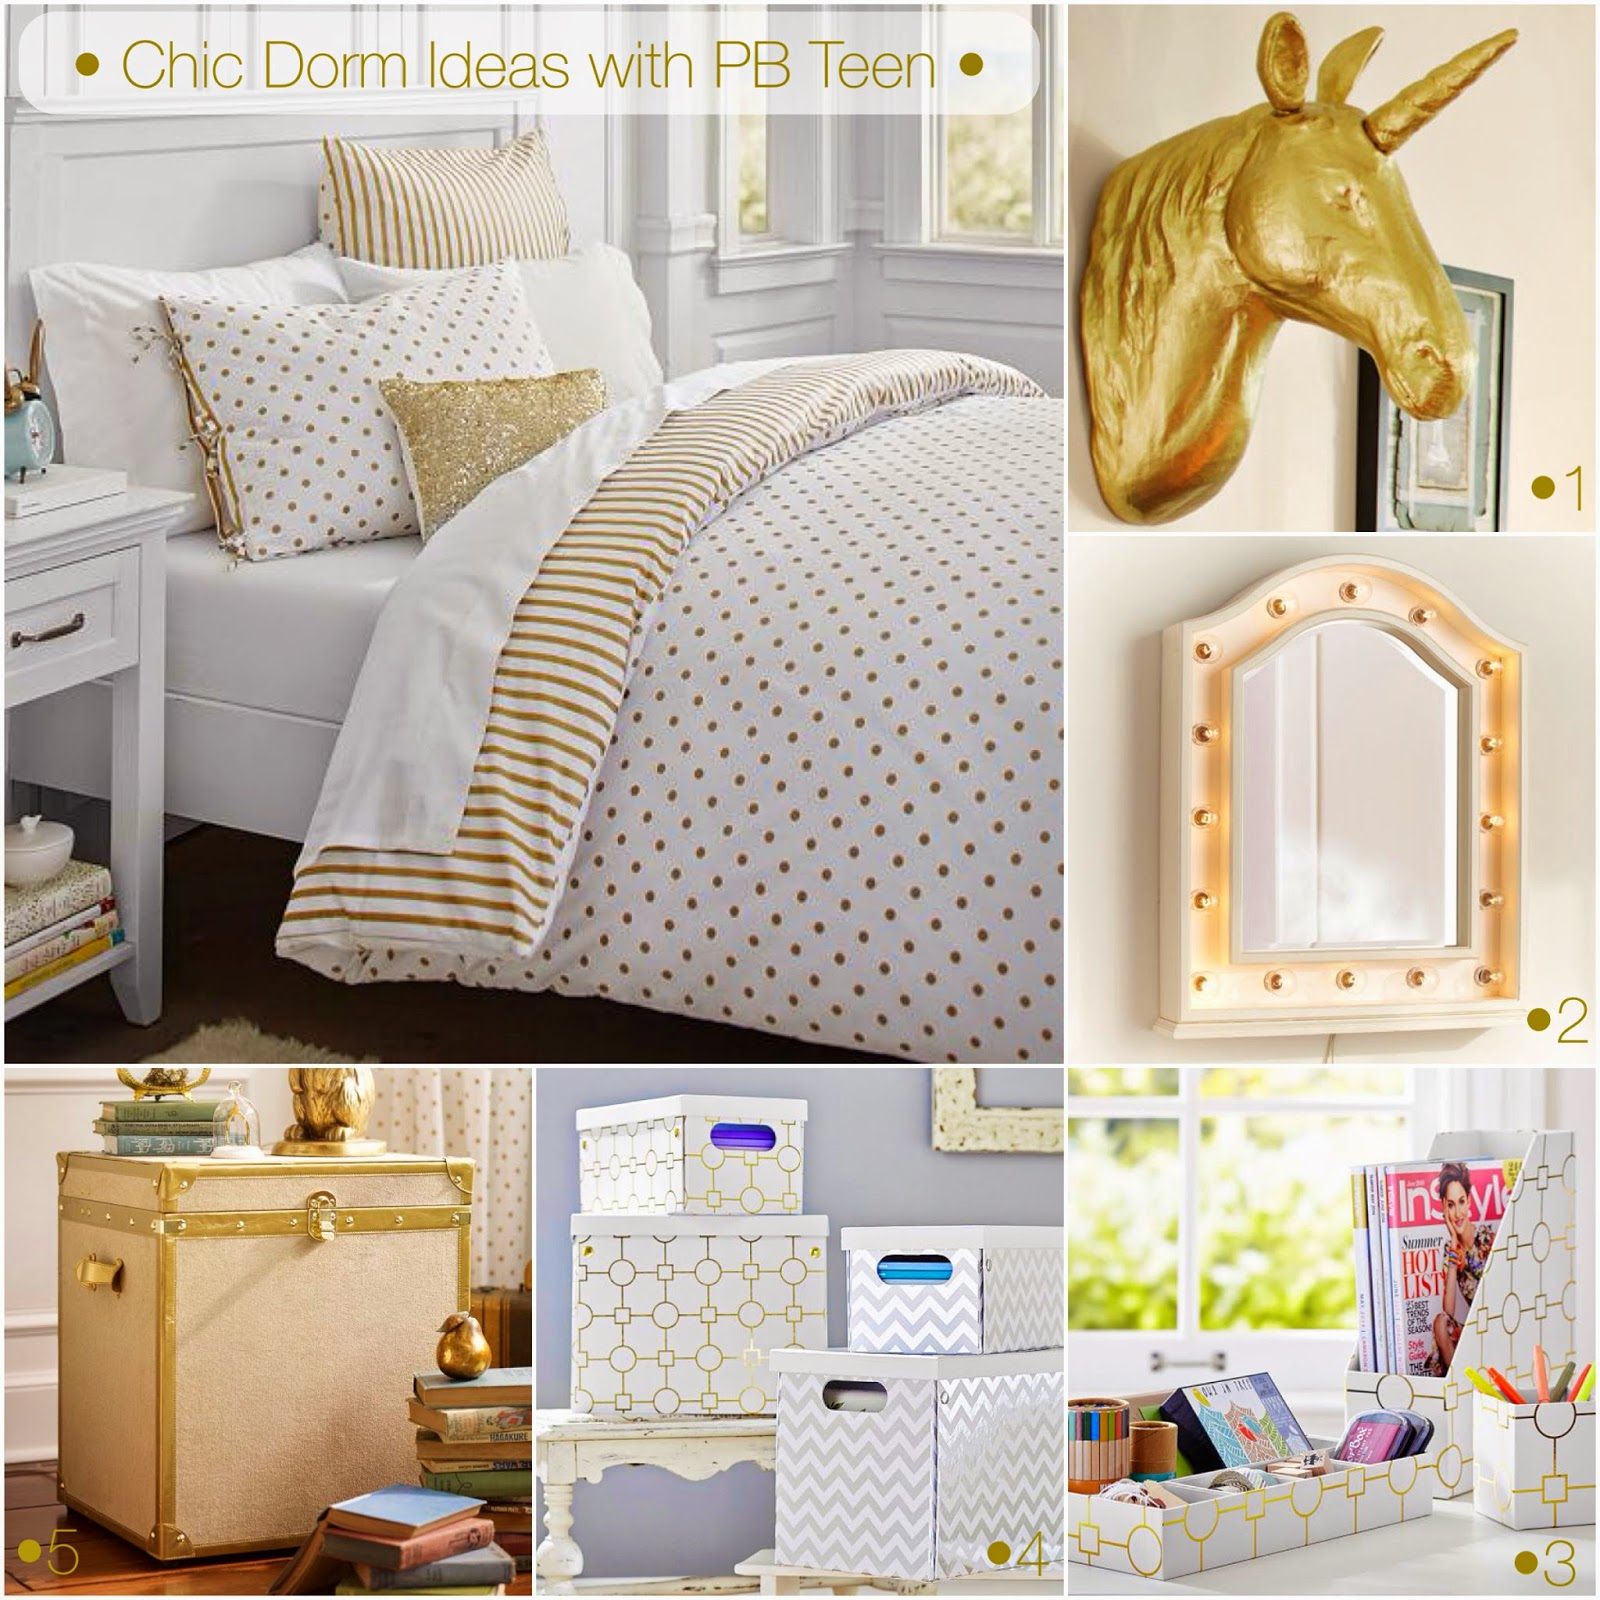 PB teen dorm do-over, Pottery Barn Dorm gold and white, Gold and white bedroom inspo, gold bedroom inspiration, gold and white office supplies, Dorm room style, Dorm room ideas, Dorm room décor, Dorm room essentials, Dorm organization